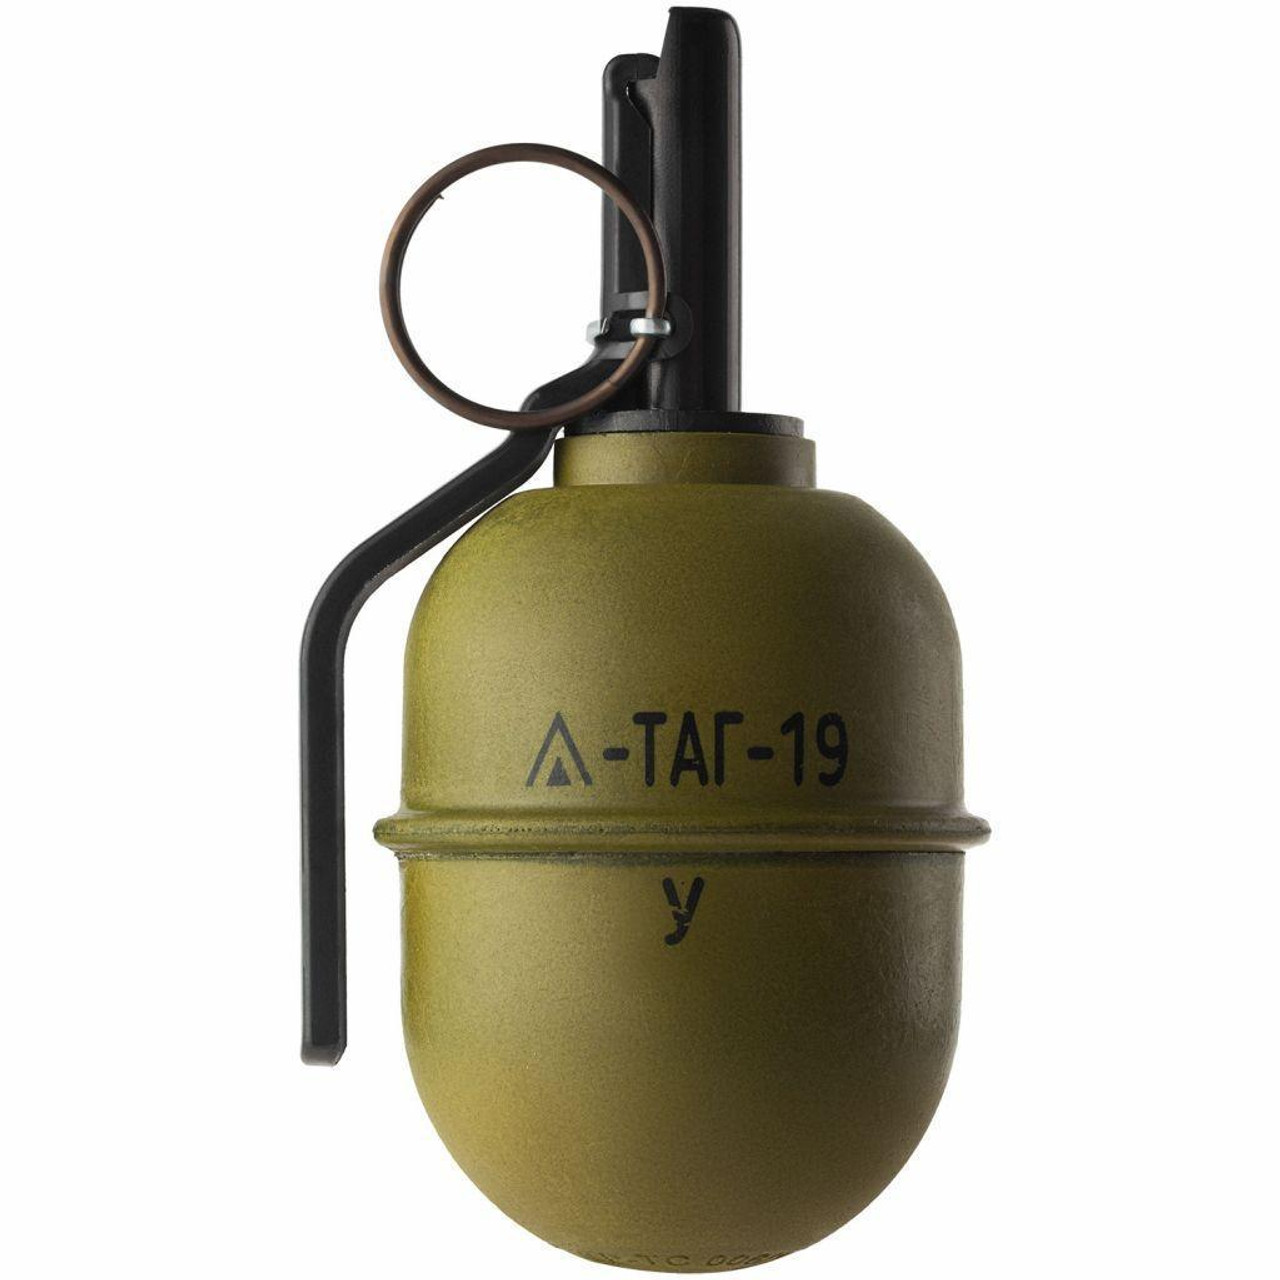 TAGinn - TAG-19Y Airsoft Hand Grenade 6 Pack - Hazmat or pickup